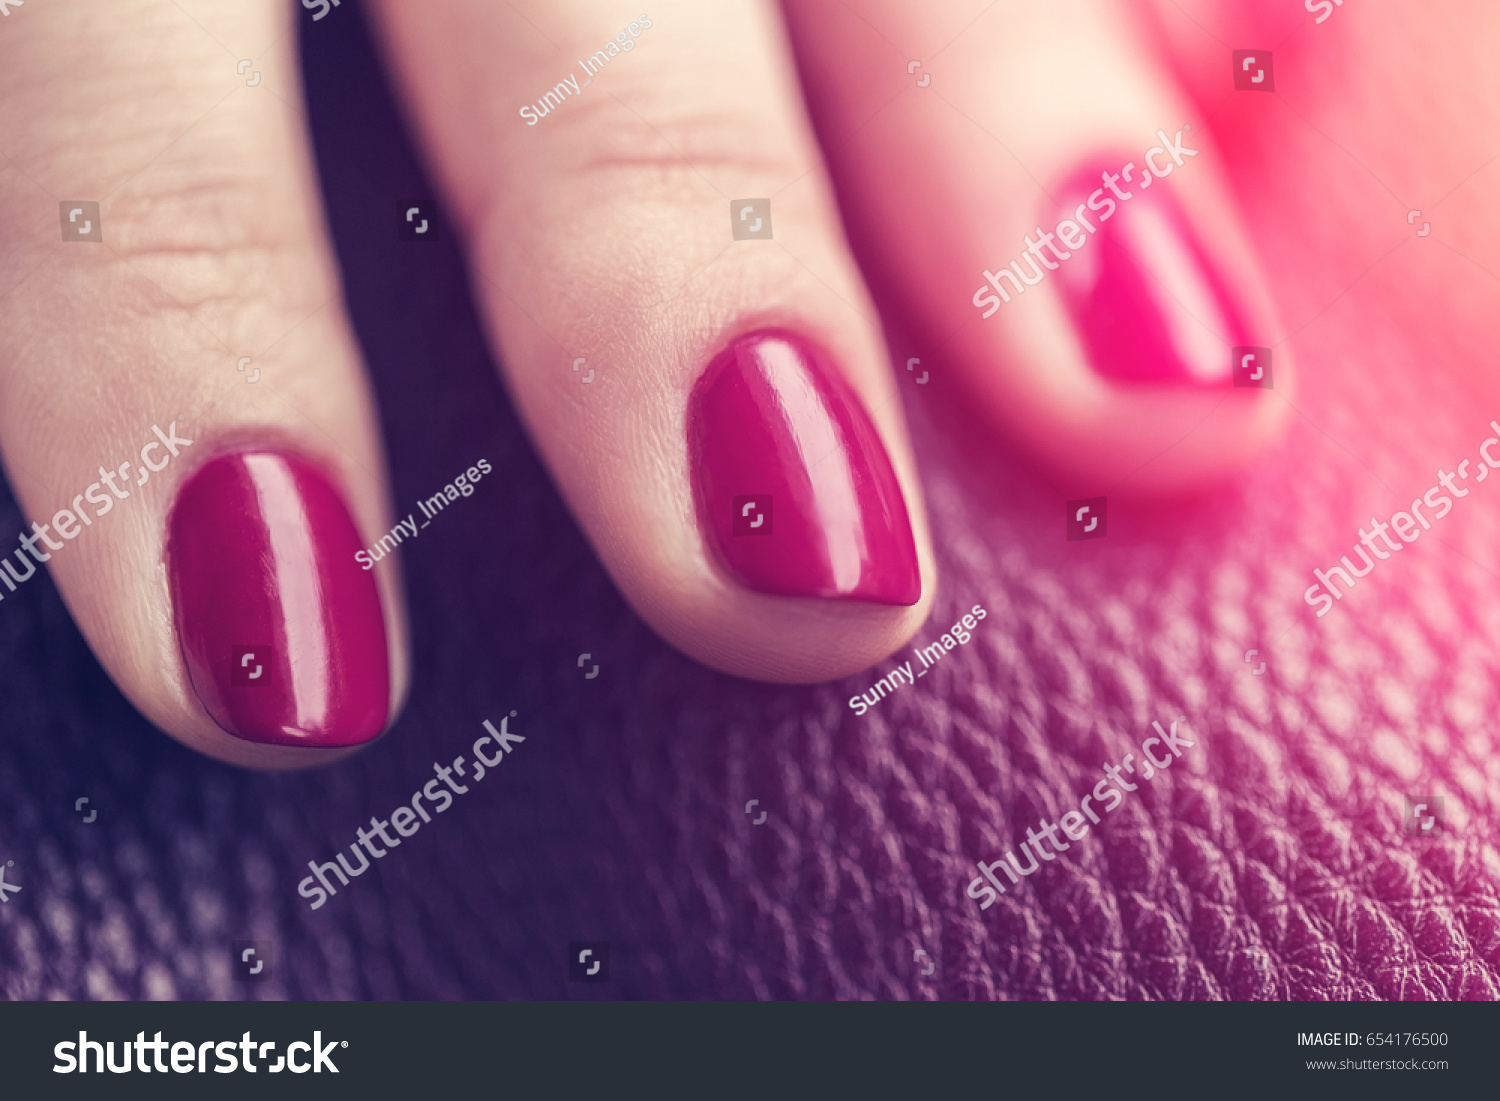 Red Wine Color Nails Manicure Leather Stock Photo Edit Now 654176500